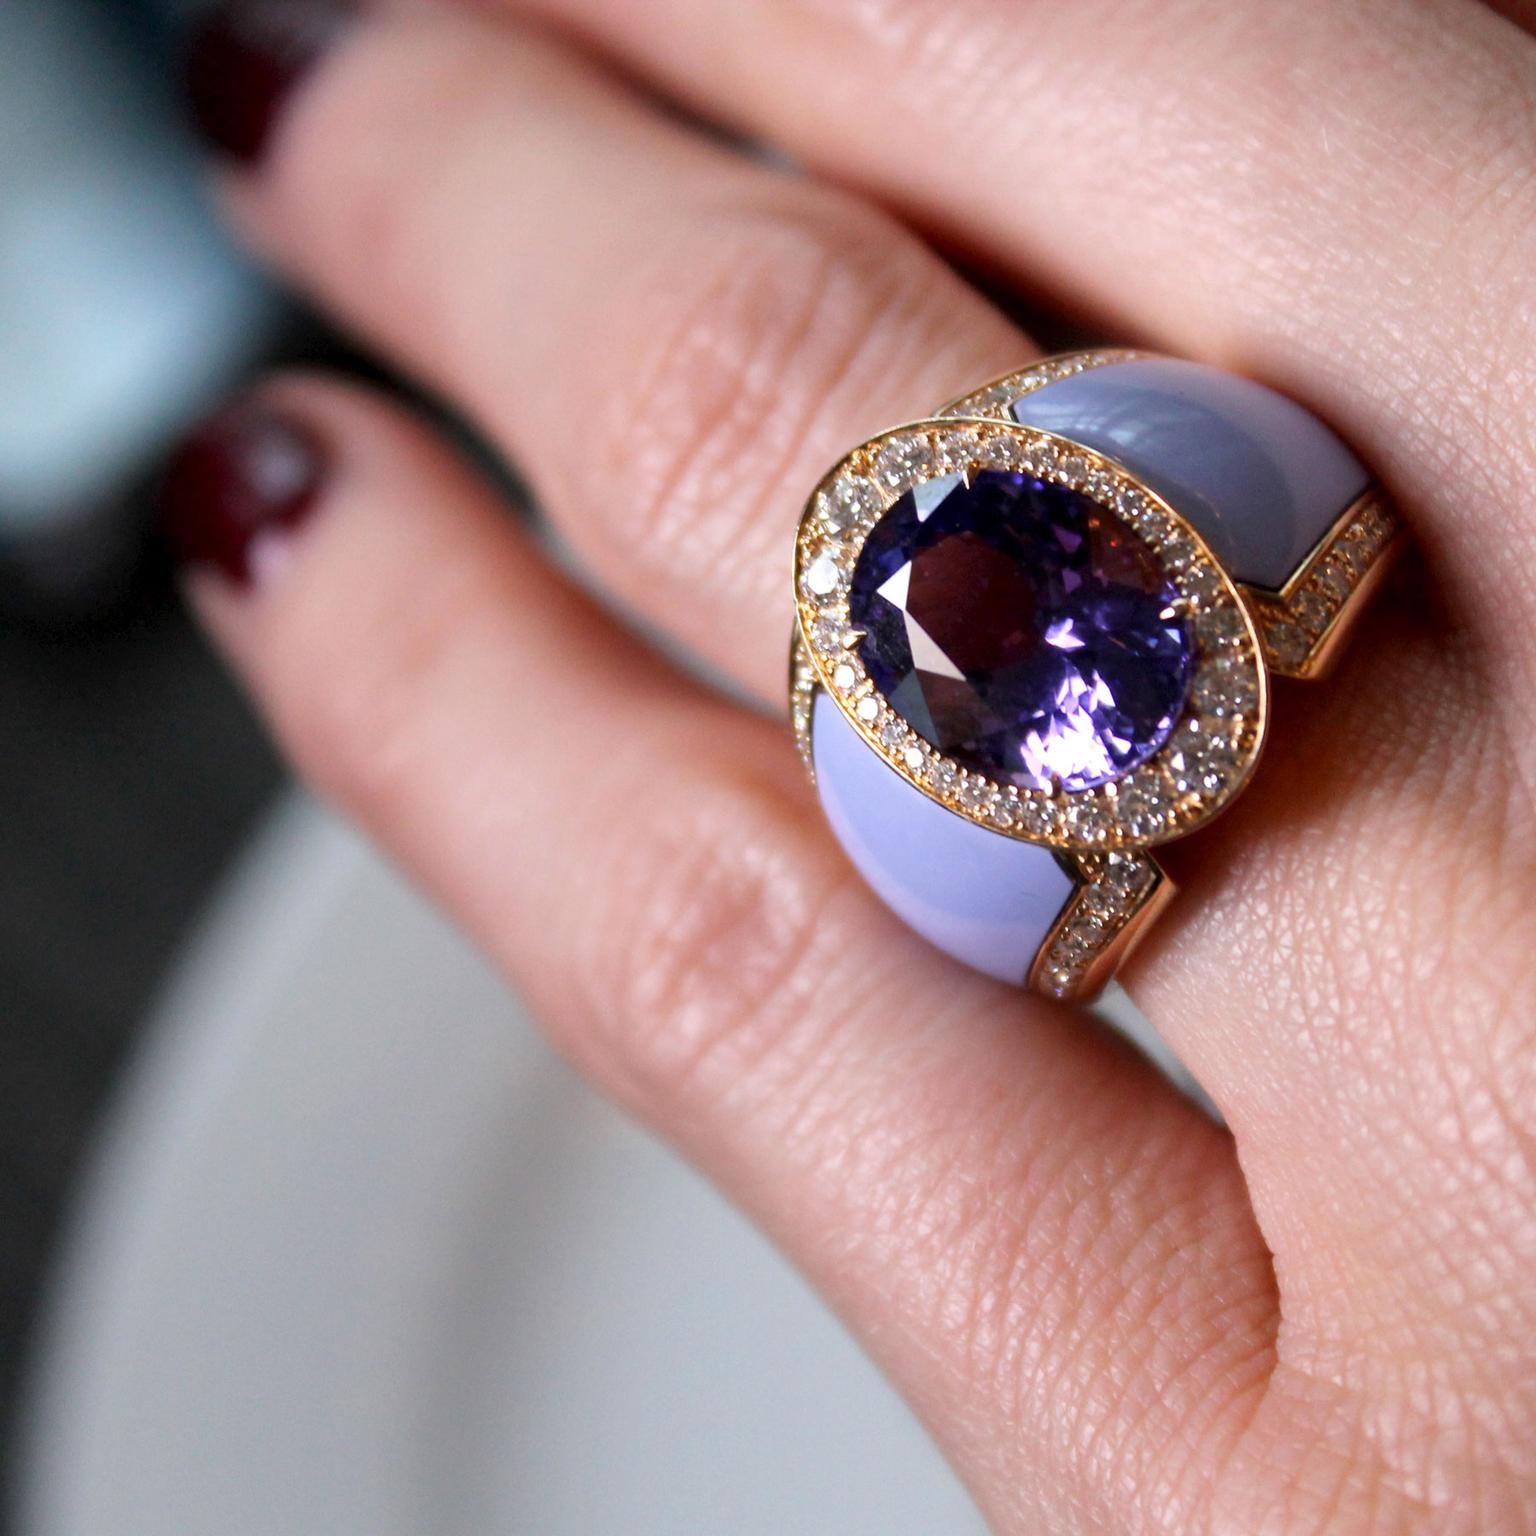 Doris Hangartner violet tanzanite ring